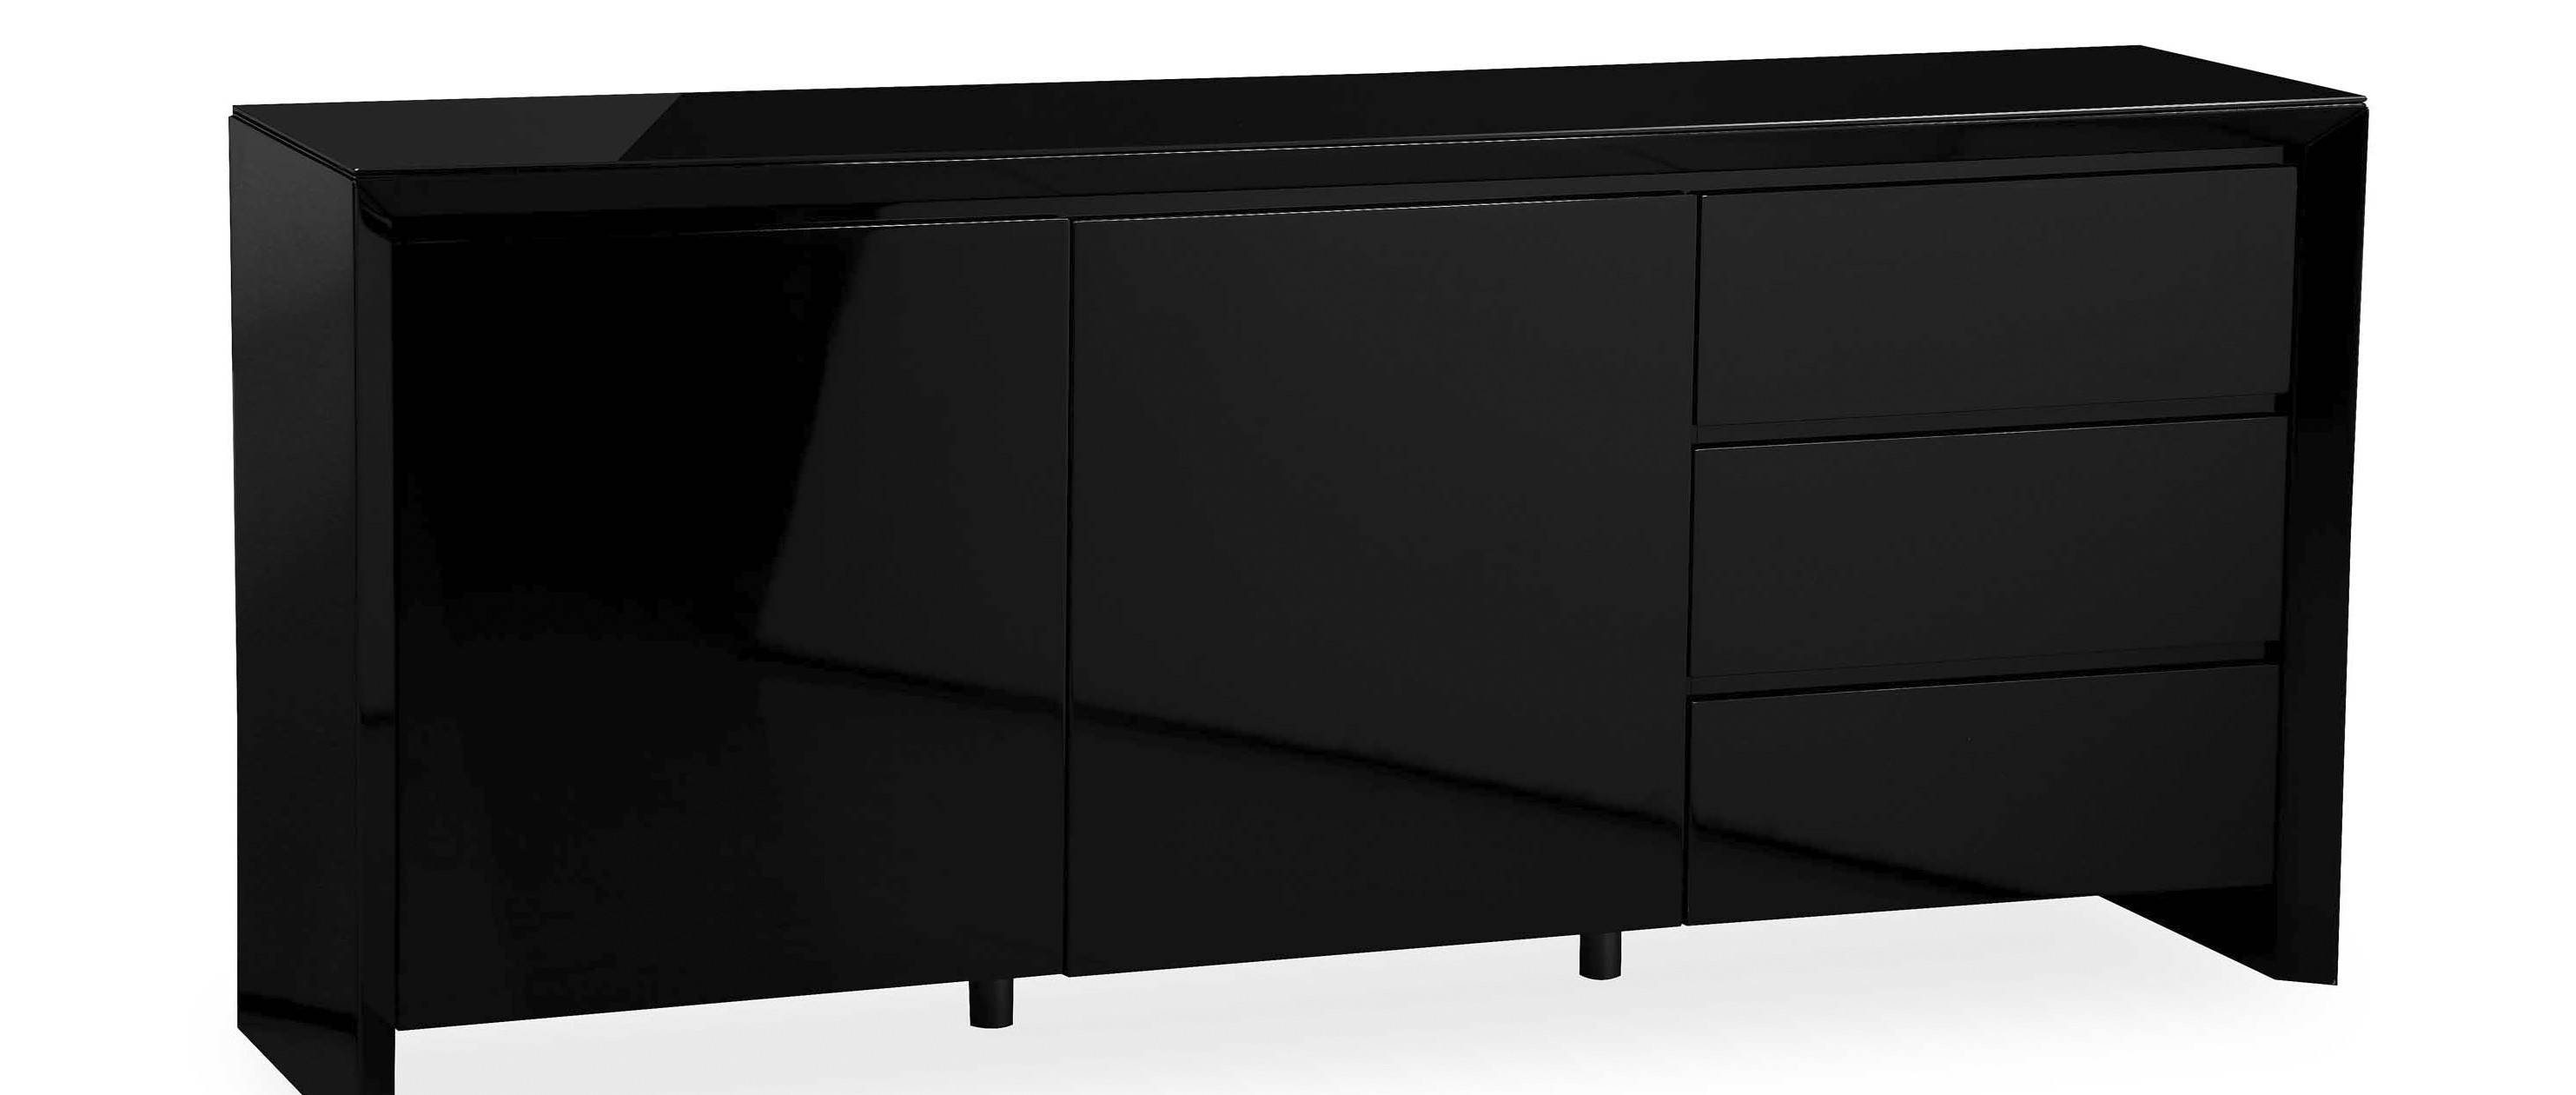 2018 Best of Ready Assembled Sideboards